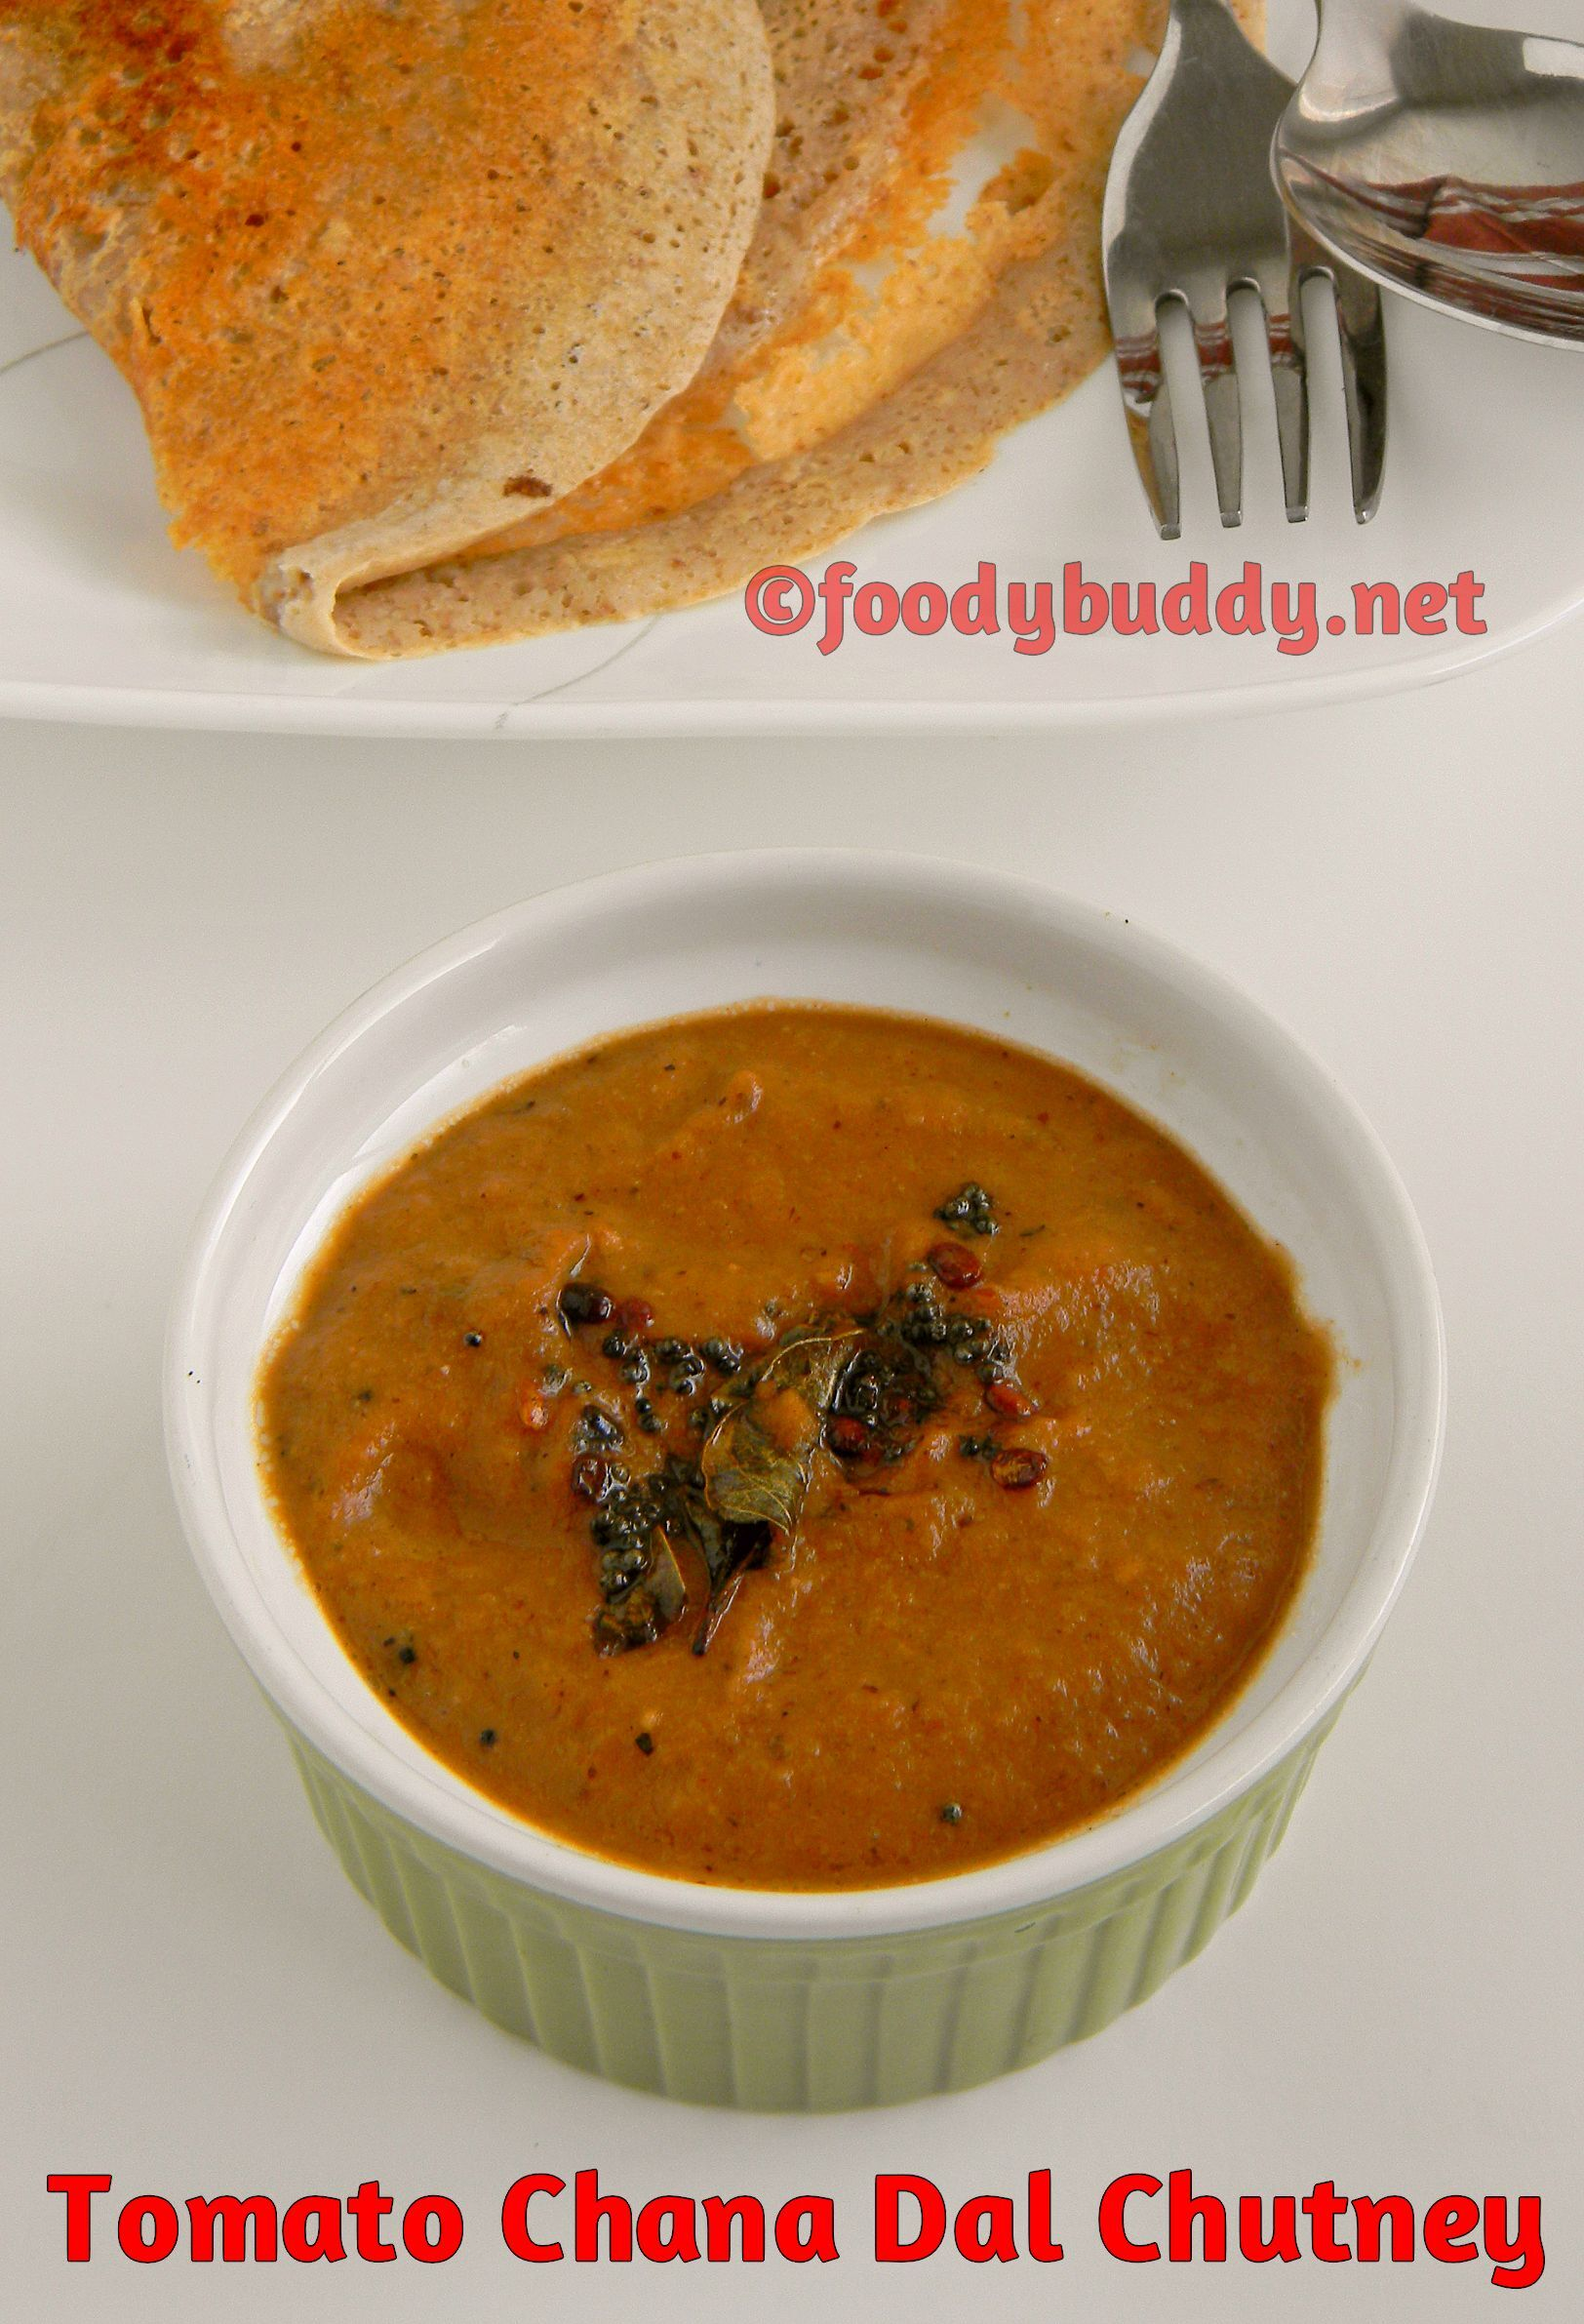 Tomato and Chana dal chutney